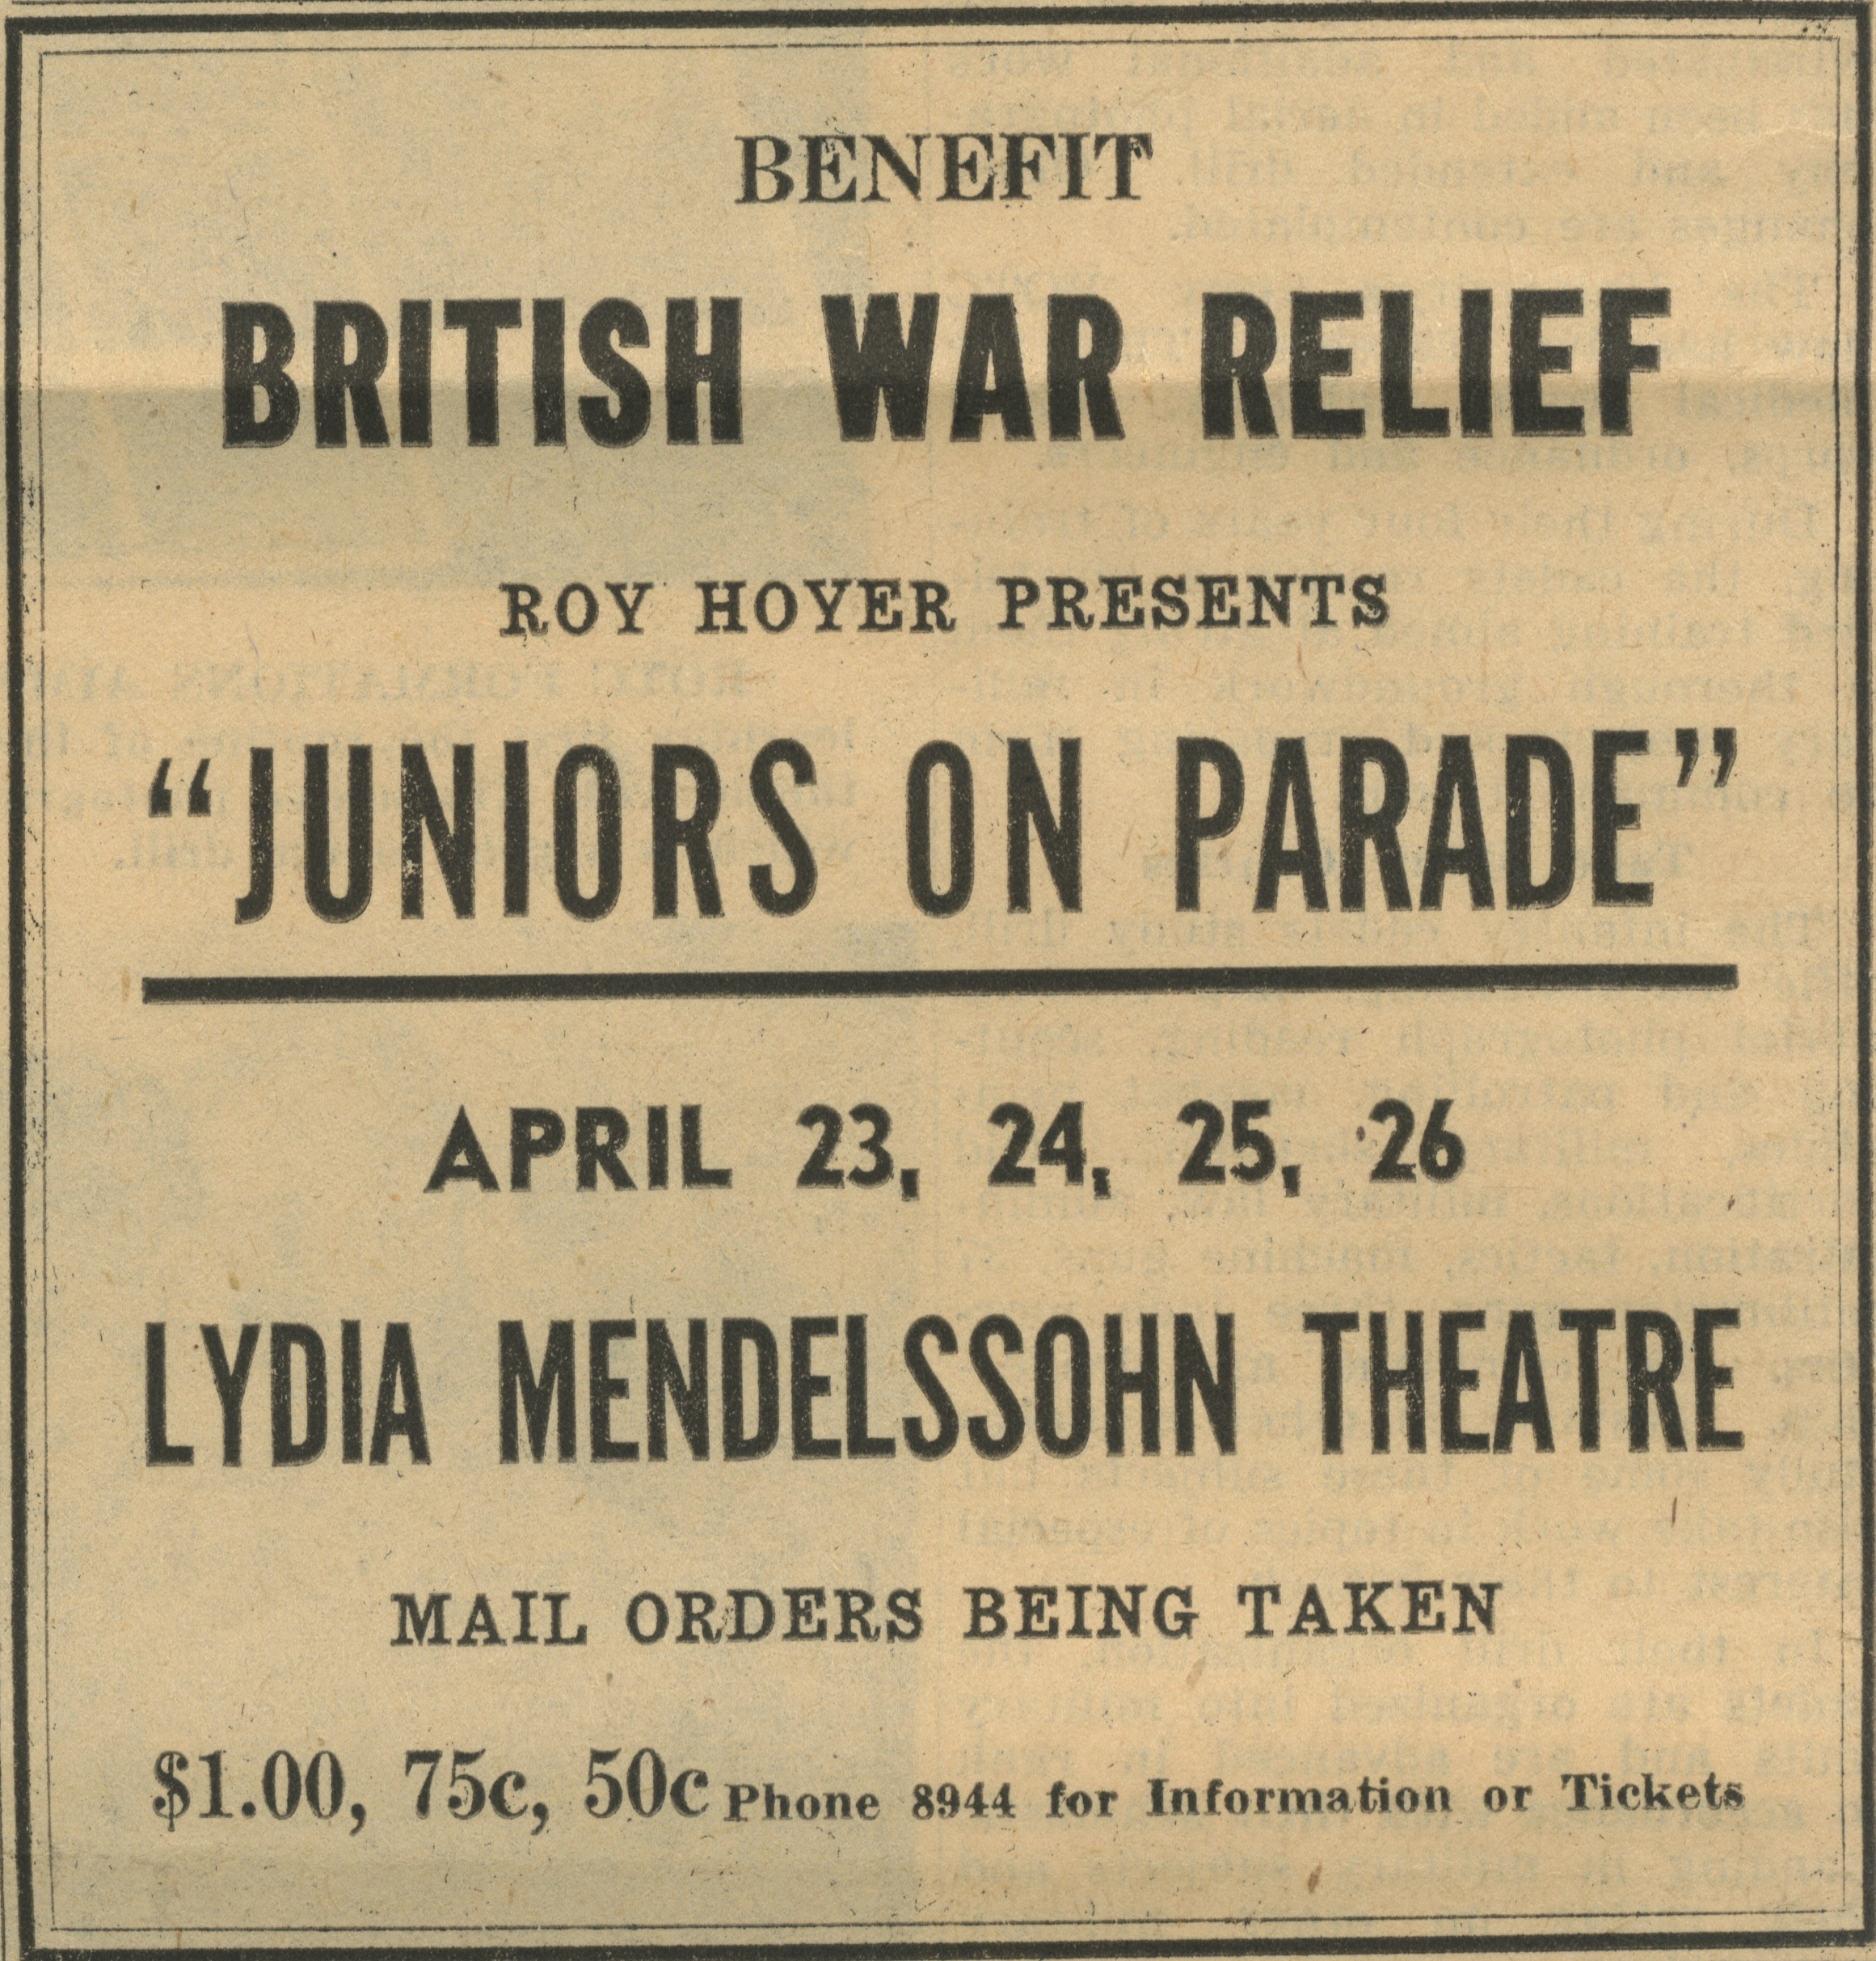 Benefit British War Relief Juniors On Parade image